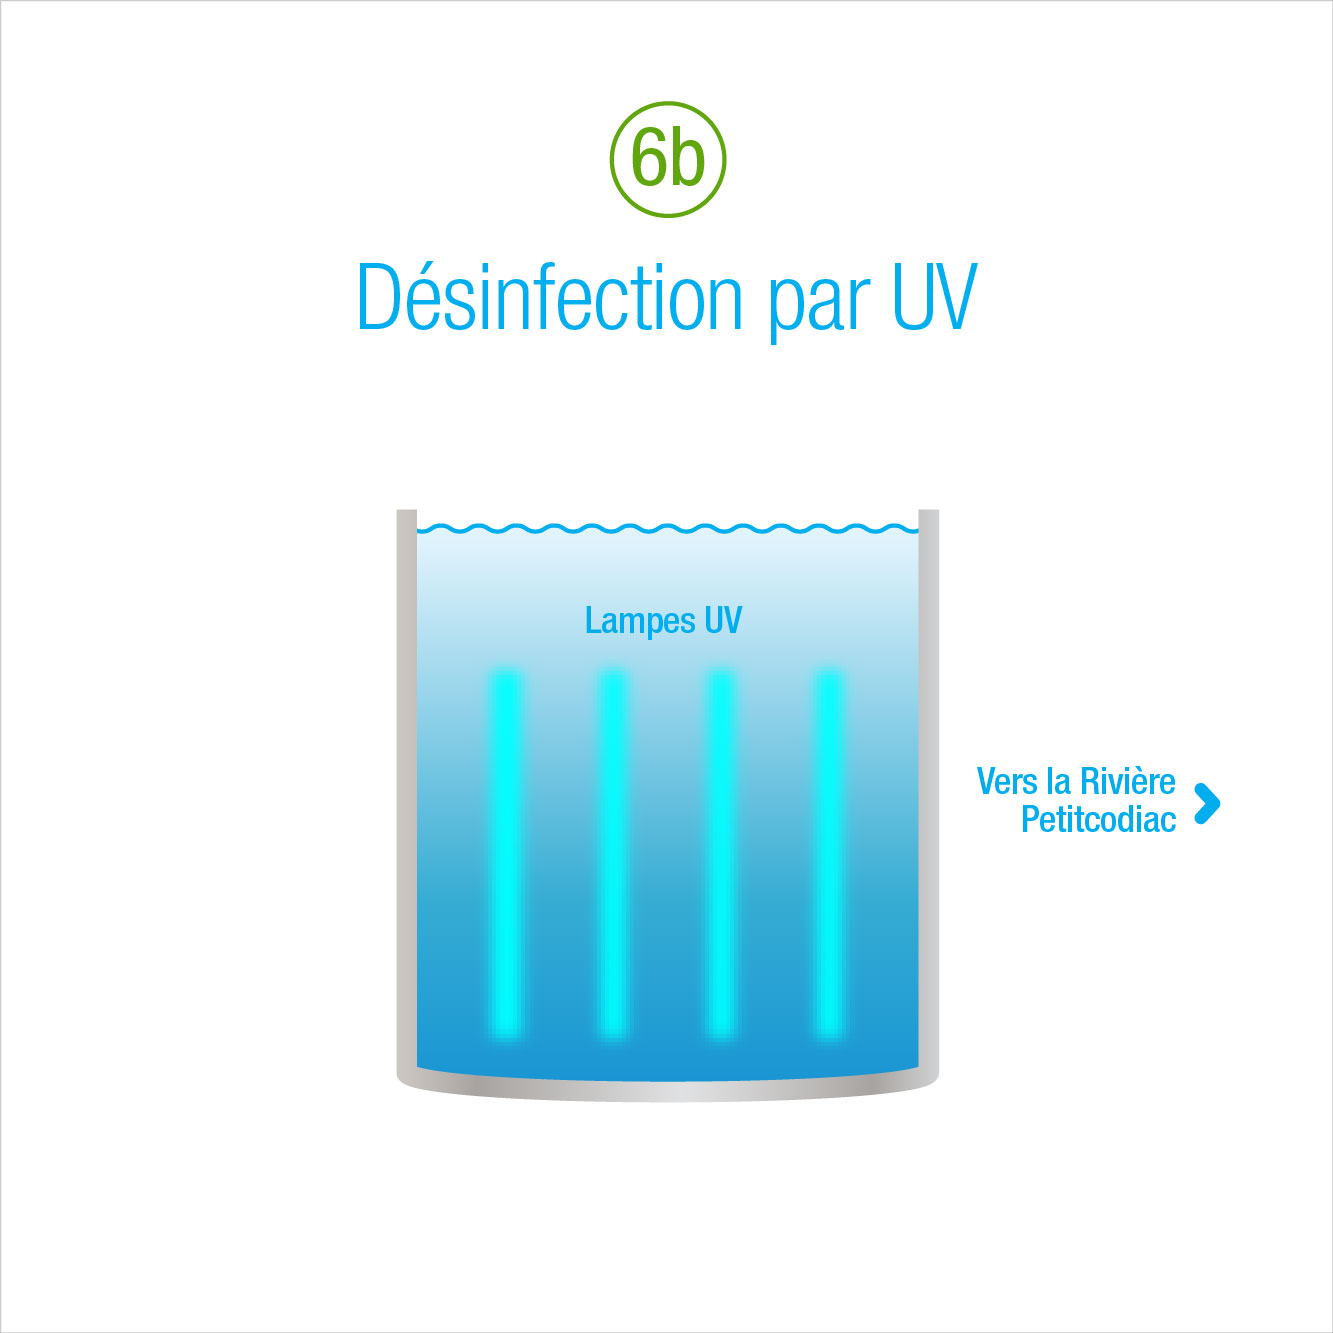 6b: Désinfection par UV